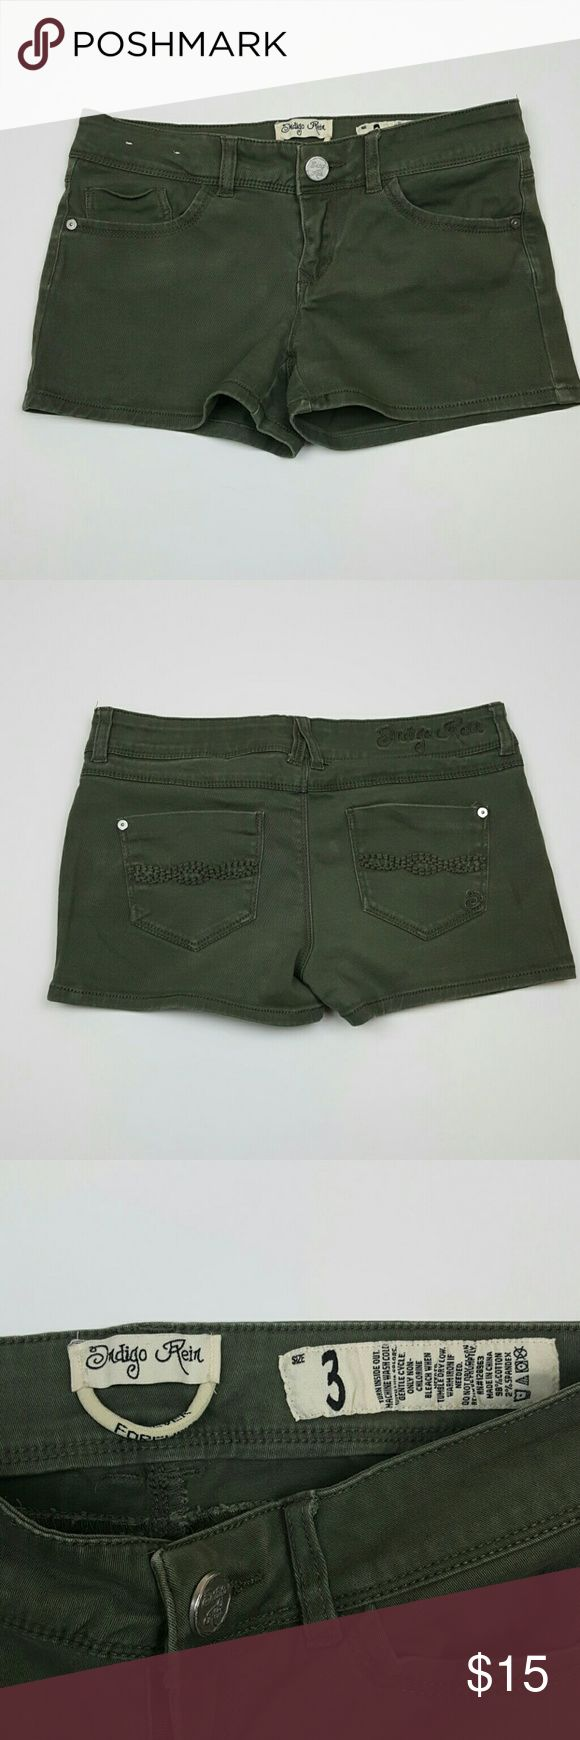 Selling this Army Green Shorts by Indigo Rein on Poshmark! My username is: dzuniga182. #shopmycloset #poshmark #fashion #shopping #style #forsale #Indigo Rein #Pants